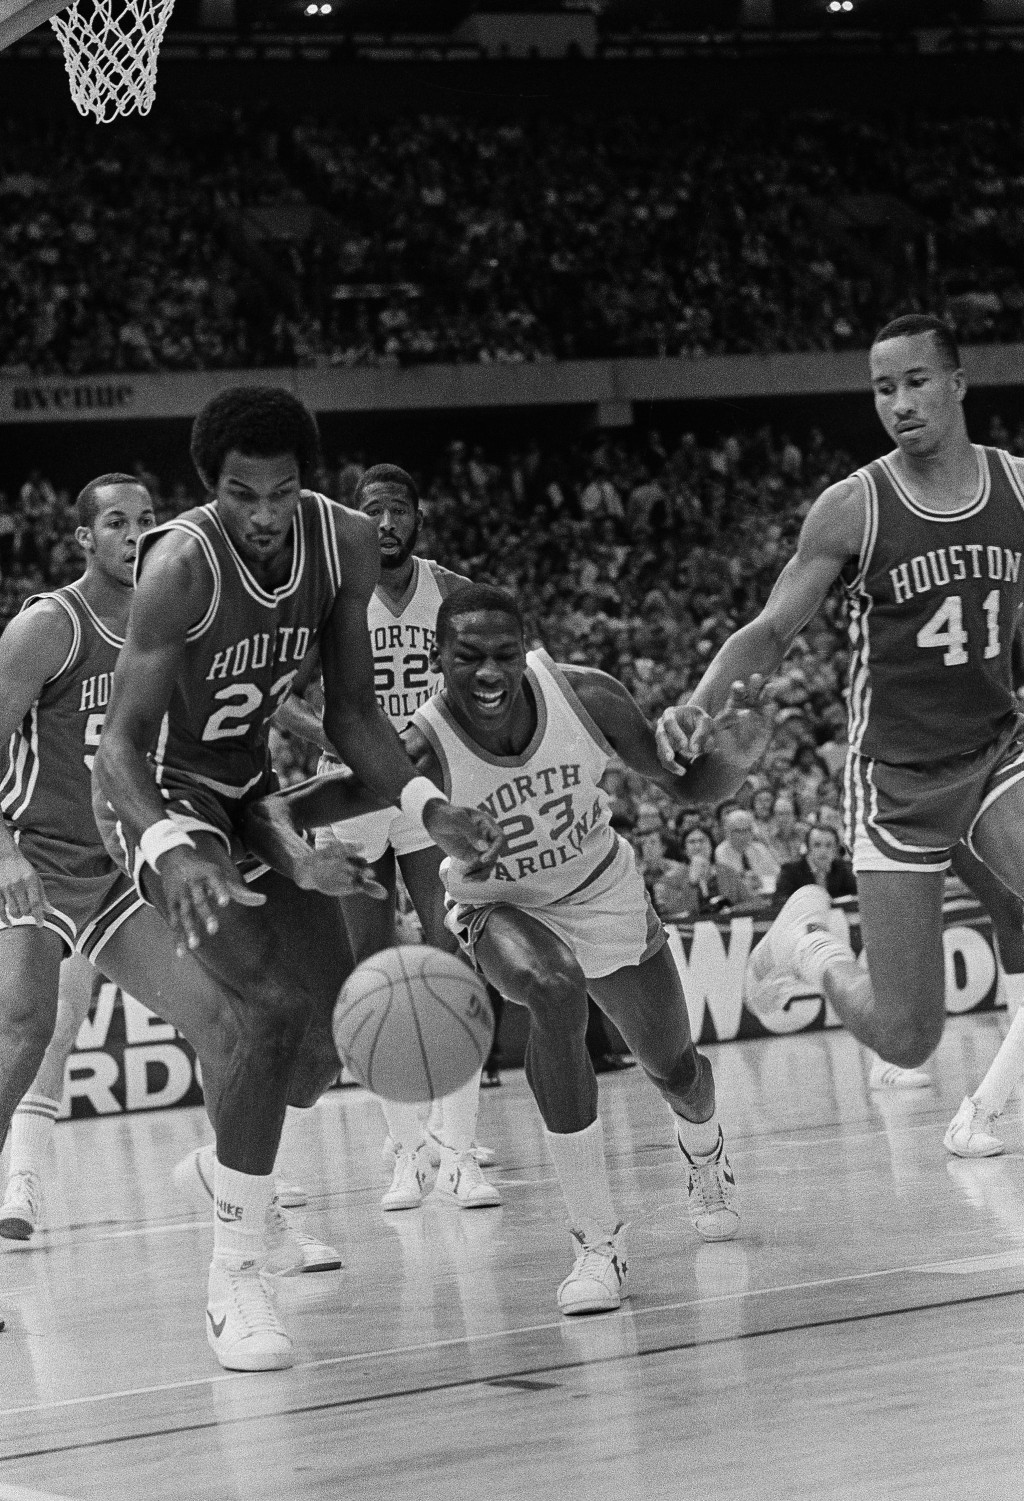 File- This March 29, 1982, file photo shows Houston's Clyde Drexler, left, and North Carolina's Michael Jordan, center, battling for the ball  during